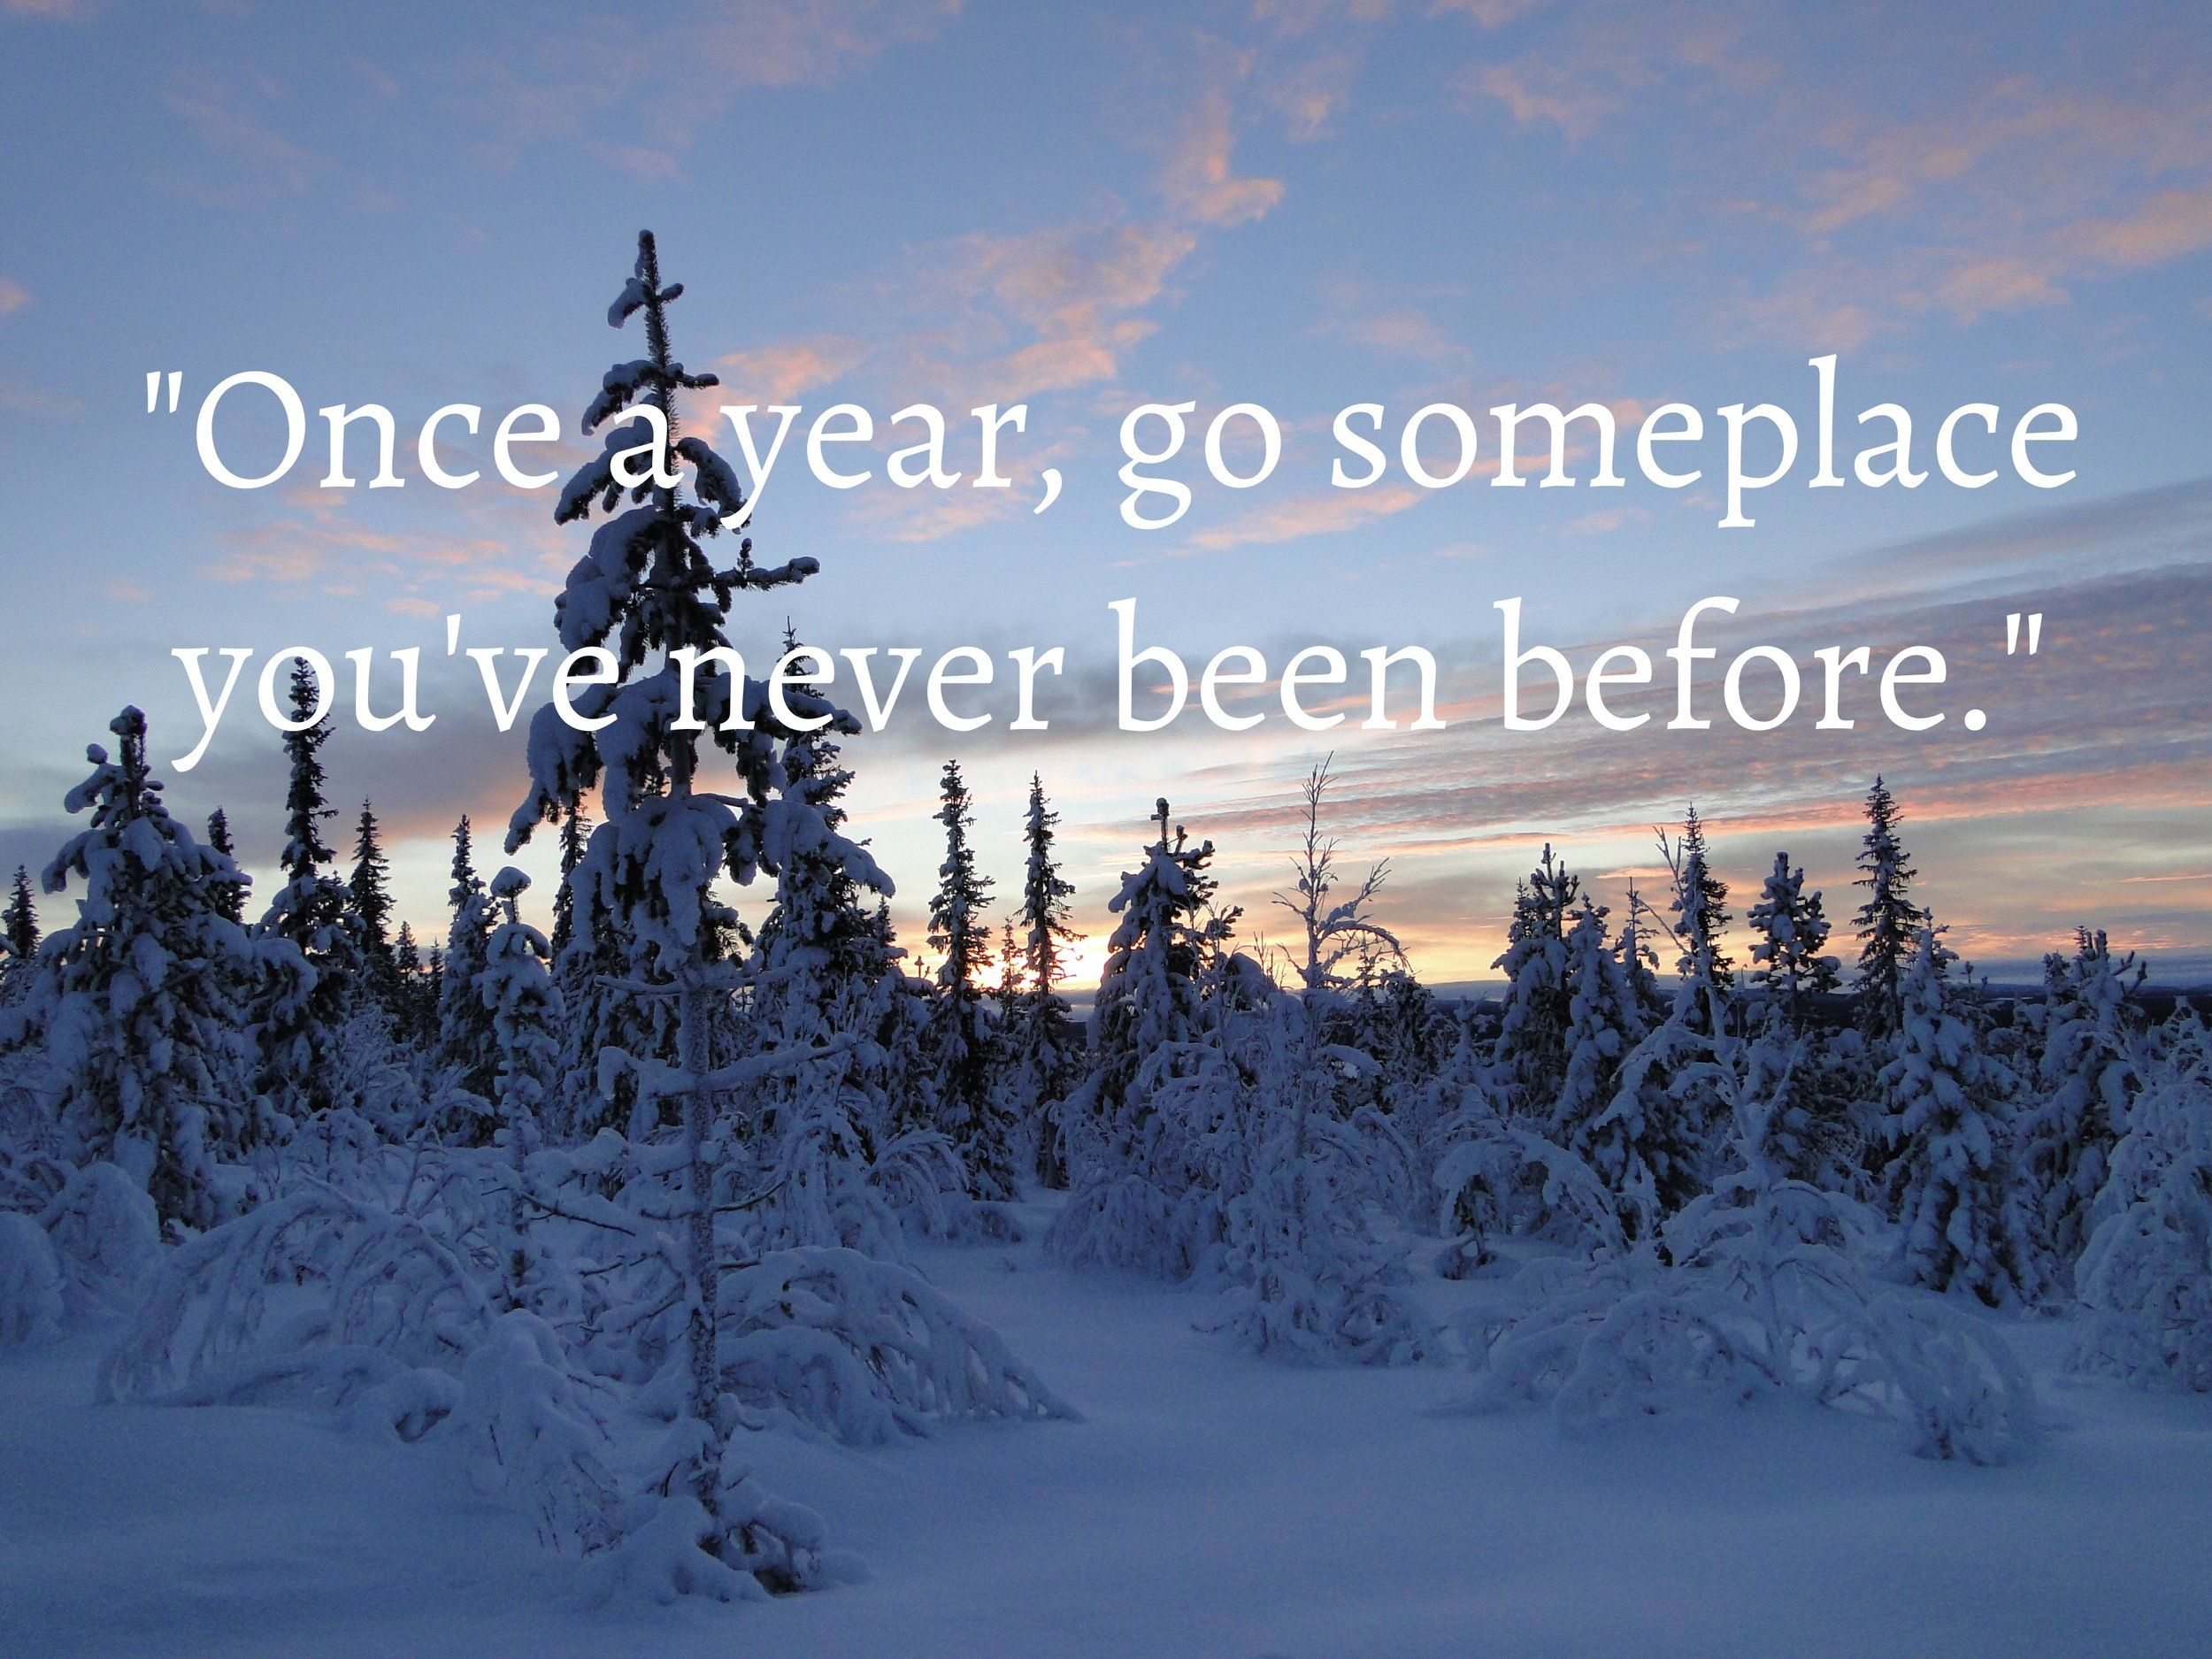 """Once a year, go someplace you've never been before"" This quote is ringing true in our hearts today more than ever. To travel is to live, to open our eyes, gain perspective, be inspired by new surroundings, culture, people and food. Traveling gives us new experiences and moments to remember. Where are you going this year?"